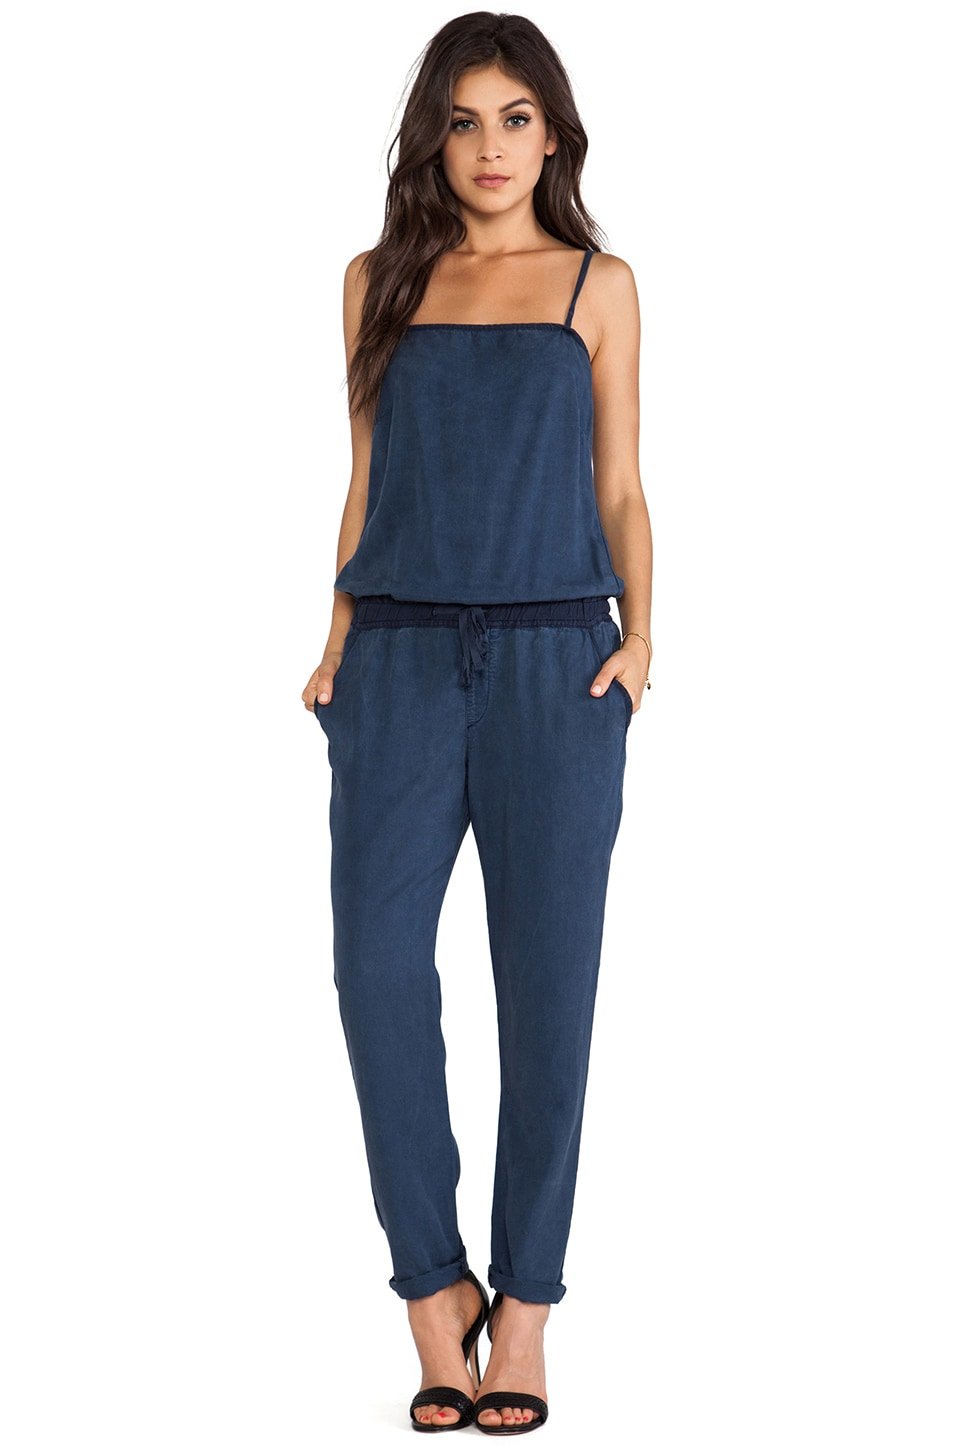 AG Adriano Goldschmied Weekend Romper in Sulfur Calm Blue